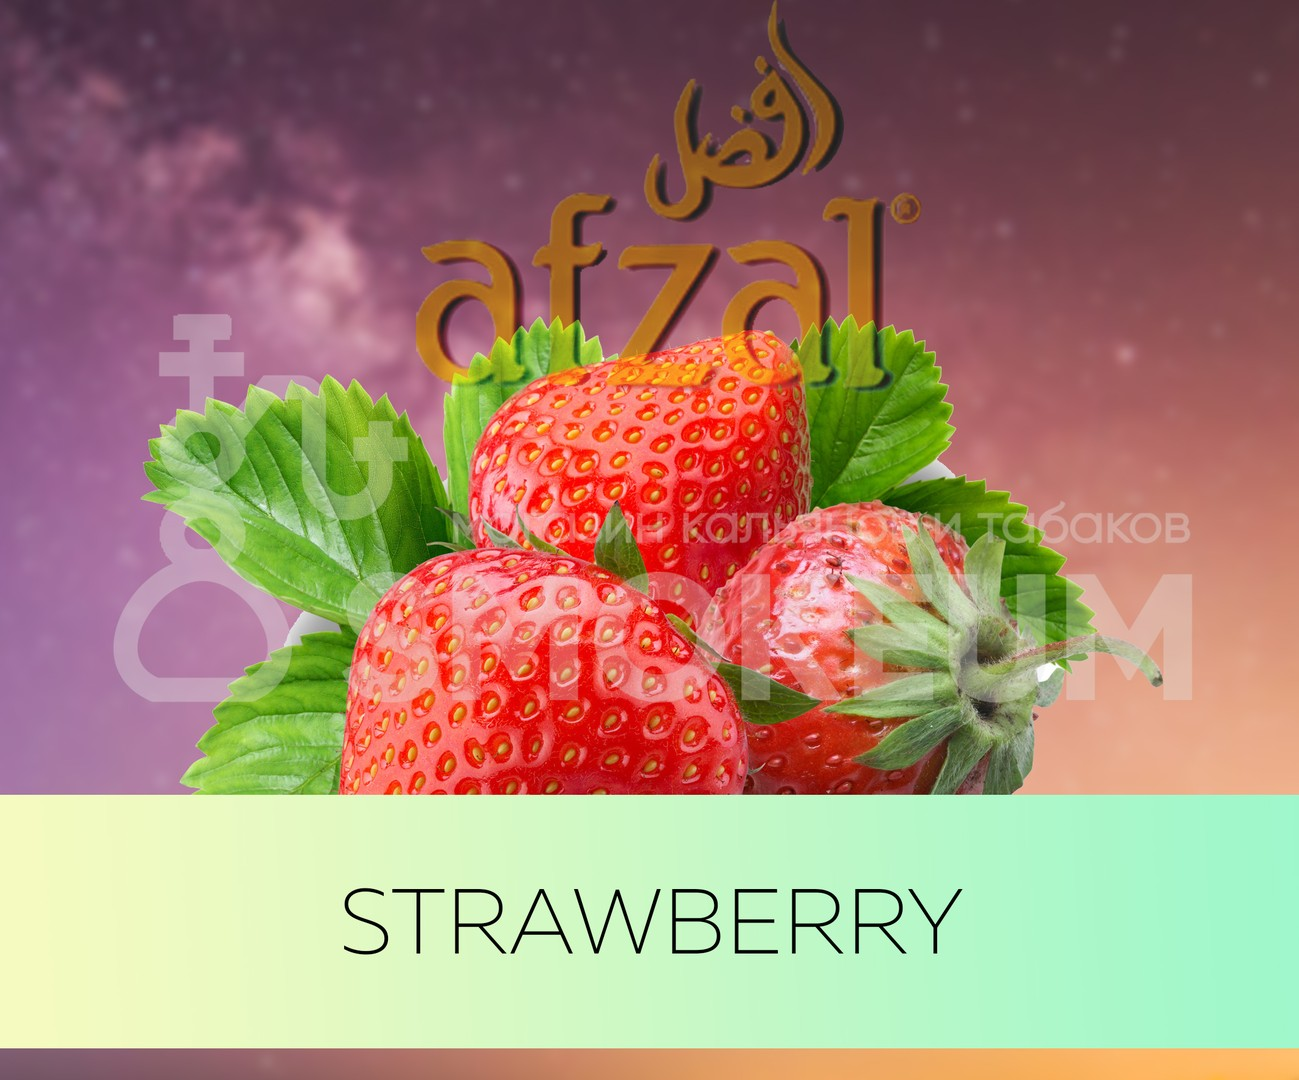 Табак Afzal - Strawberry (Клубника) 50 гр